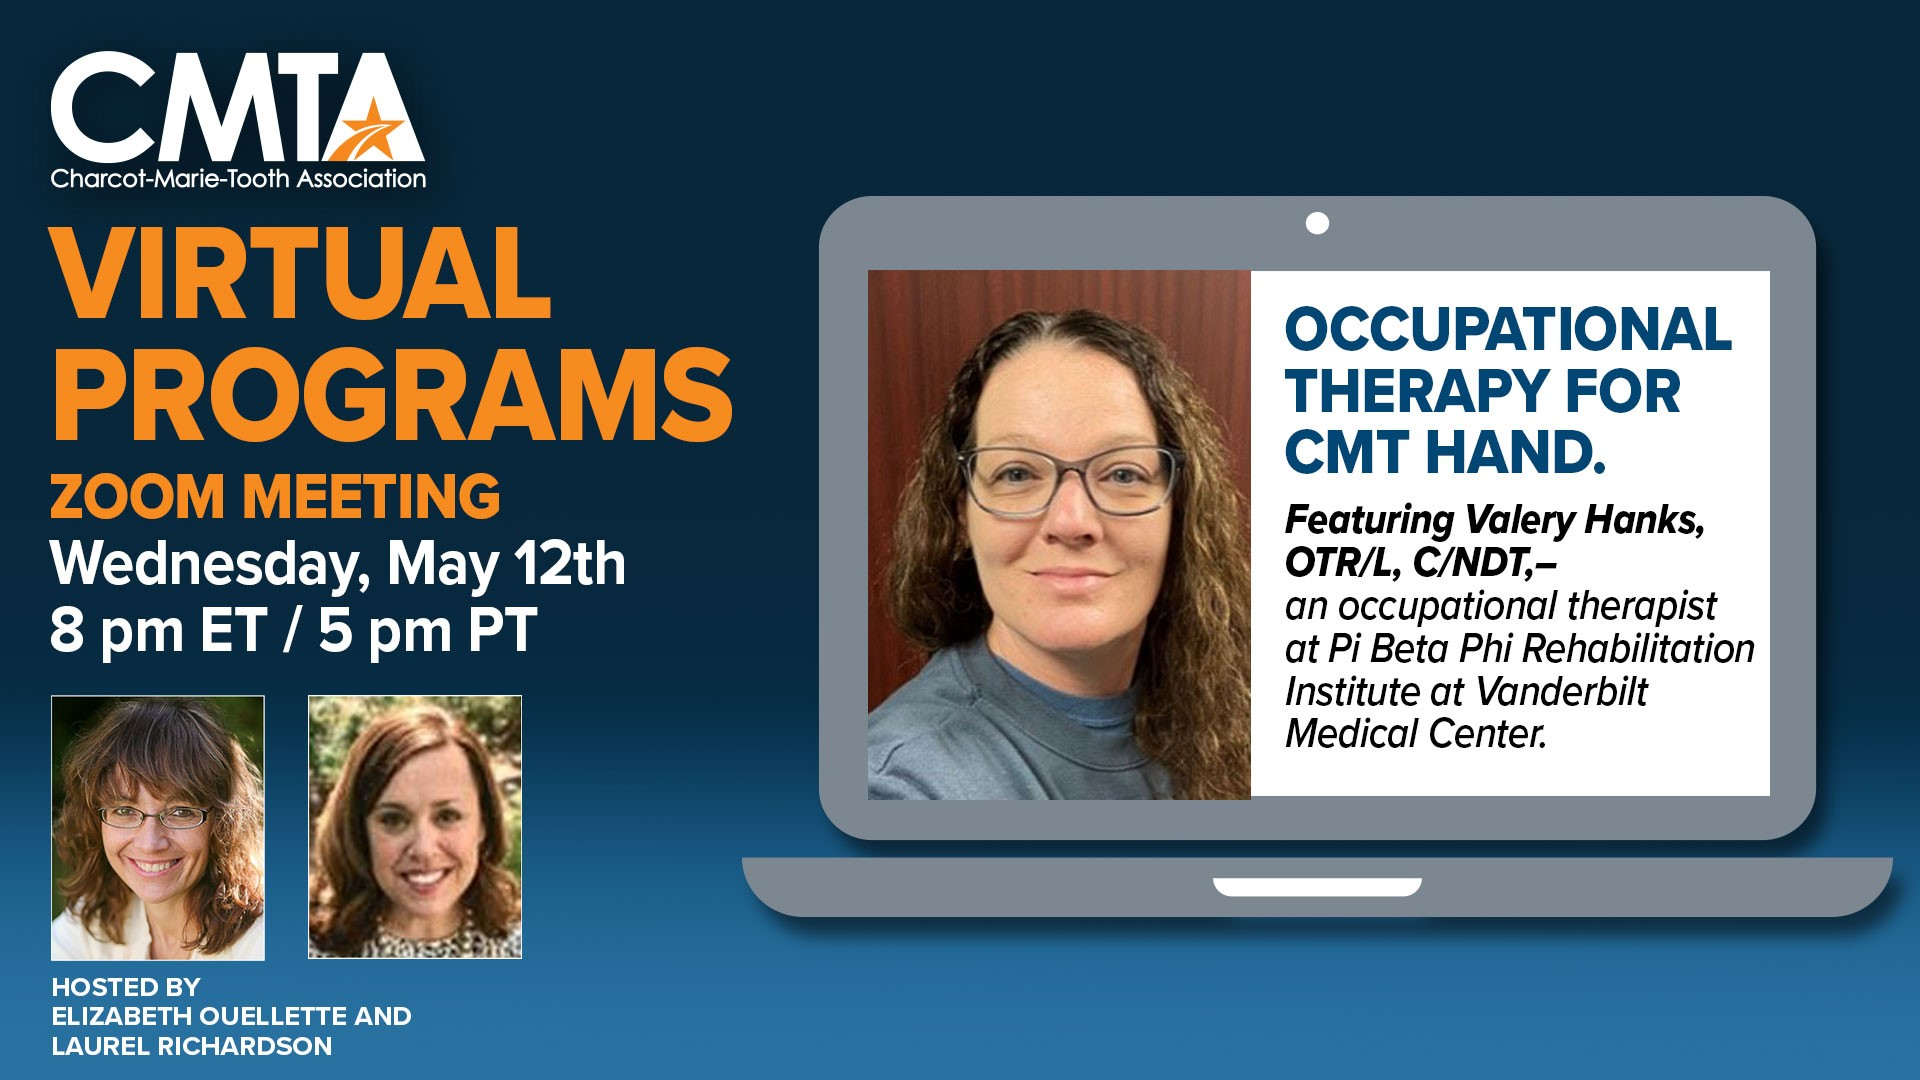 CMTA Education Meeting: Occupational Therapy for CMT (Virtual)